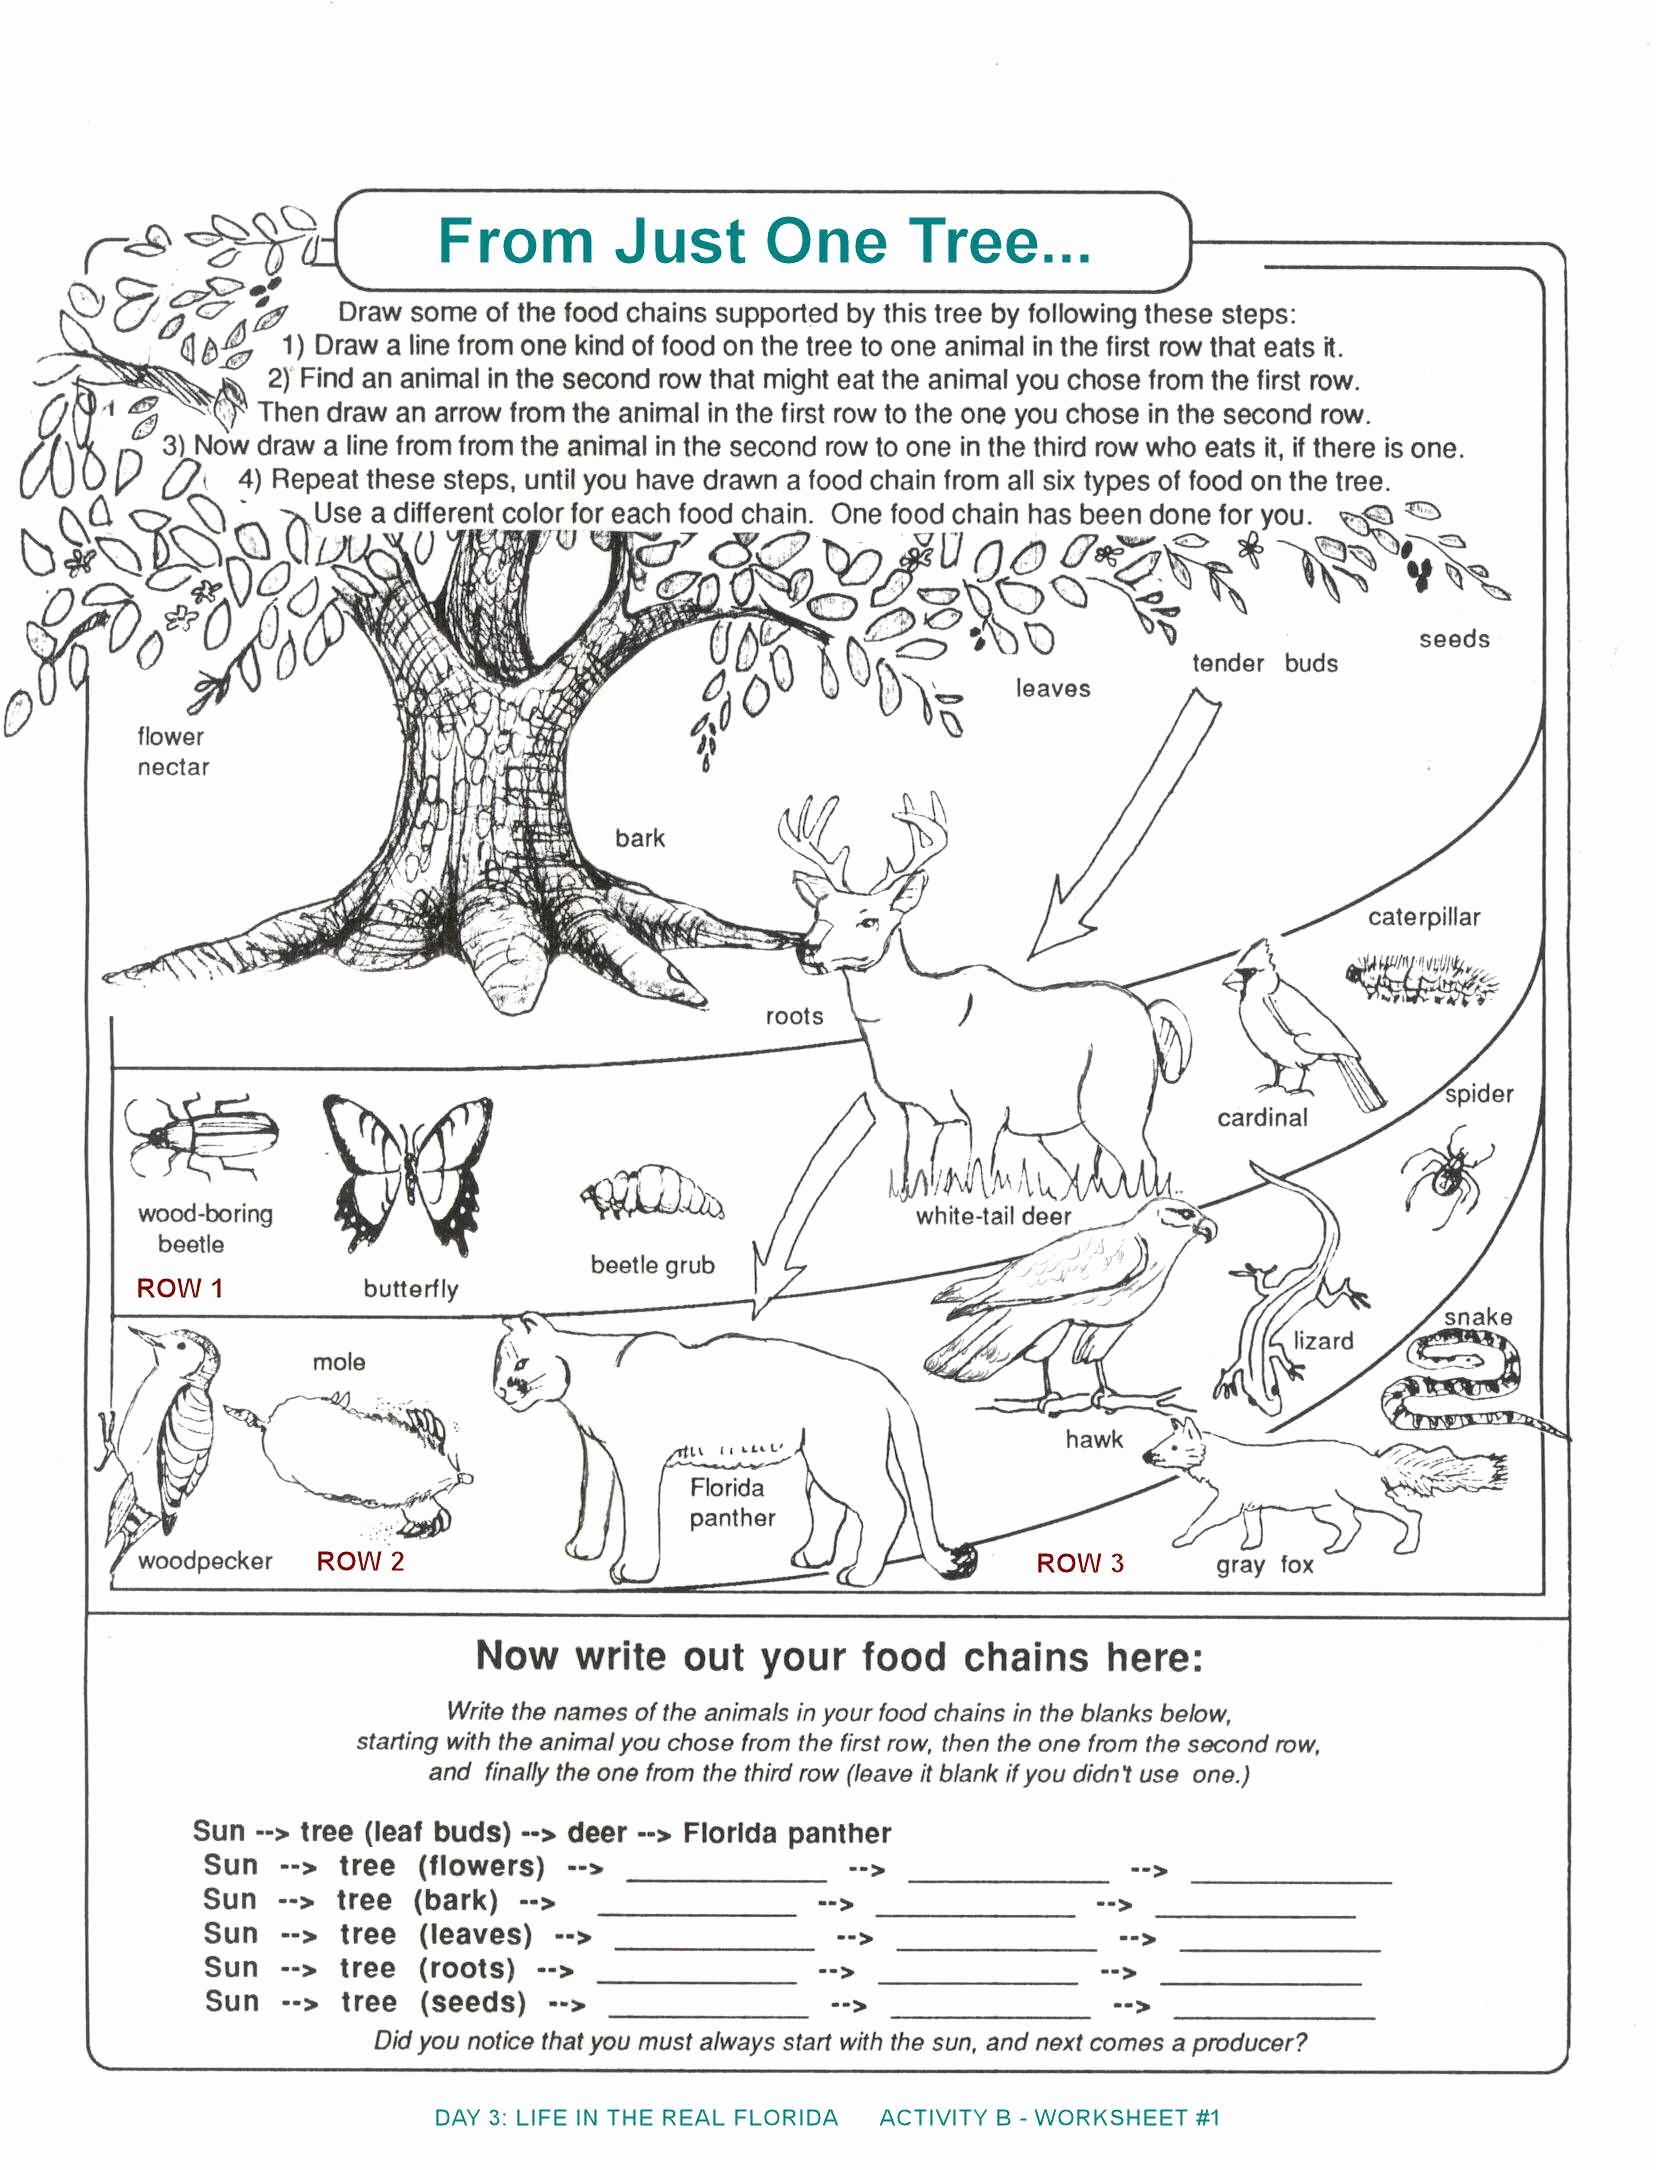 Free Printable Ecosystem Worksheets Lovely 20 Free Printable Ecosystem Worksheets